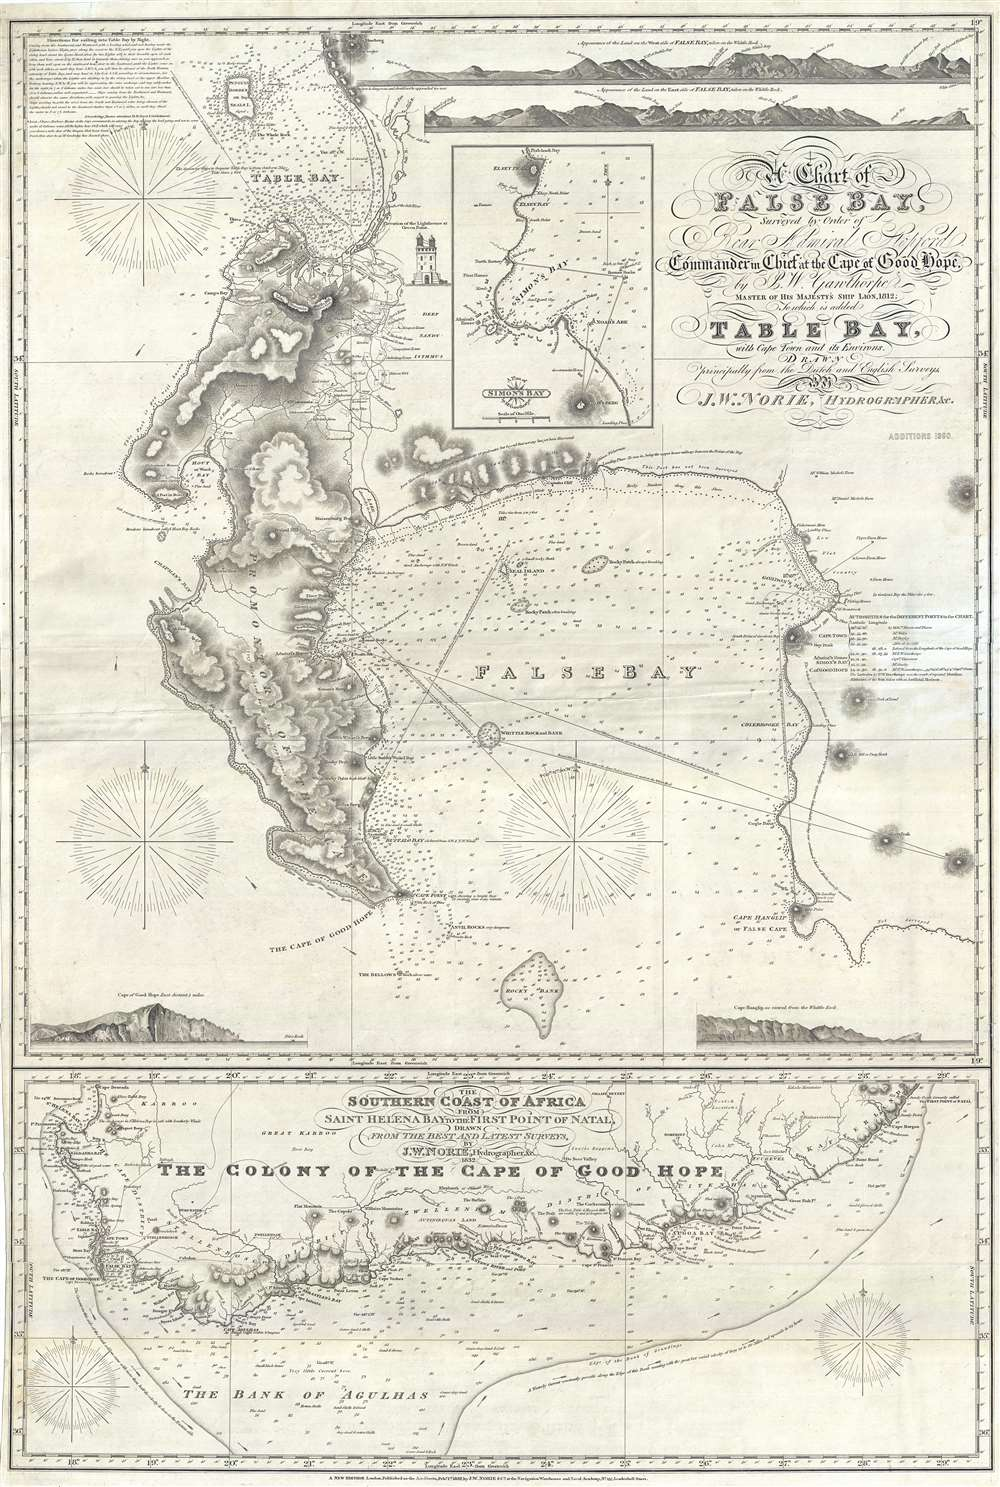 A Chart of False Bay Surveyed by Order of Rear Admiral Stopford, Commander in Chief at the Cape of Good Hope, by P. W. Gawthorpe, Master of His Majesty's Ship Lion, 1812; to which is added Table Bay, with Cape Twon and its Environs.